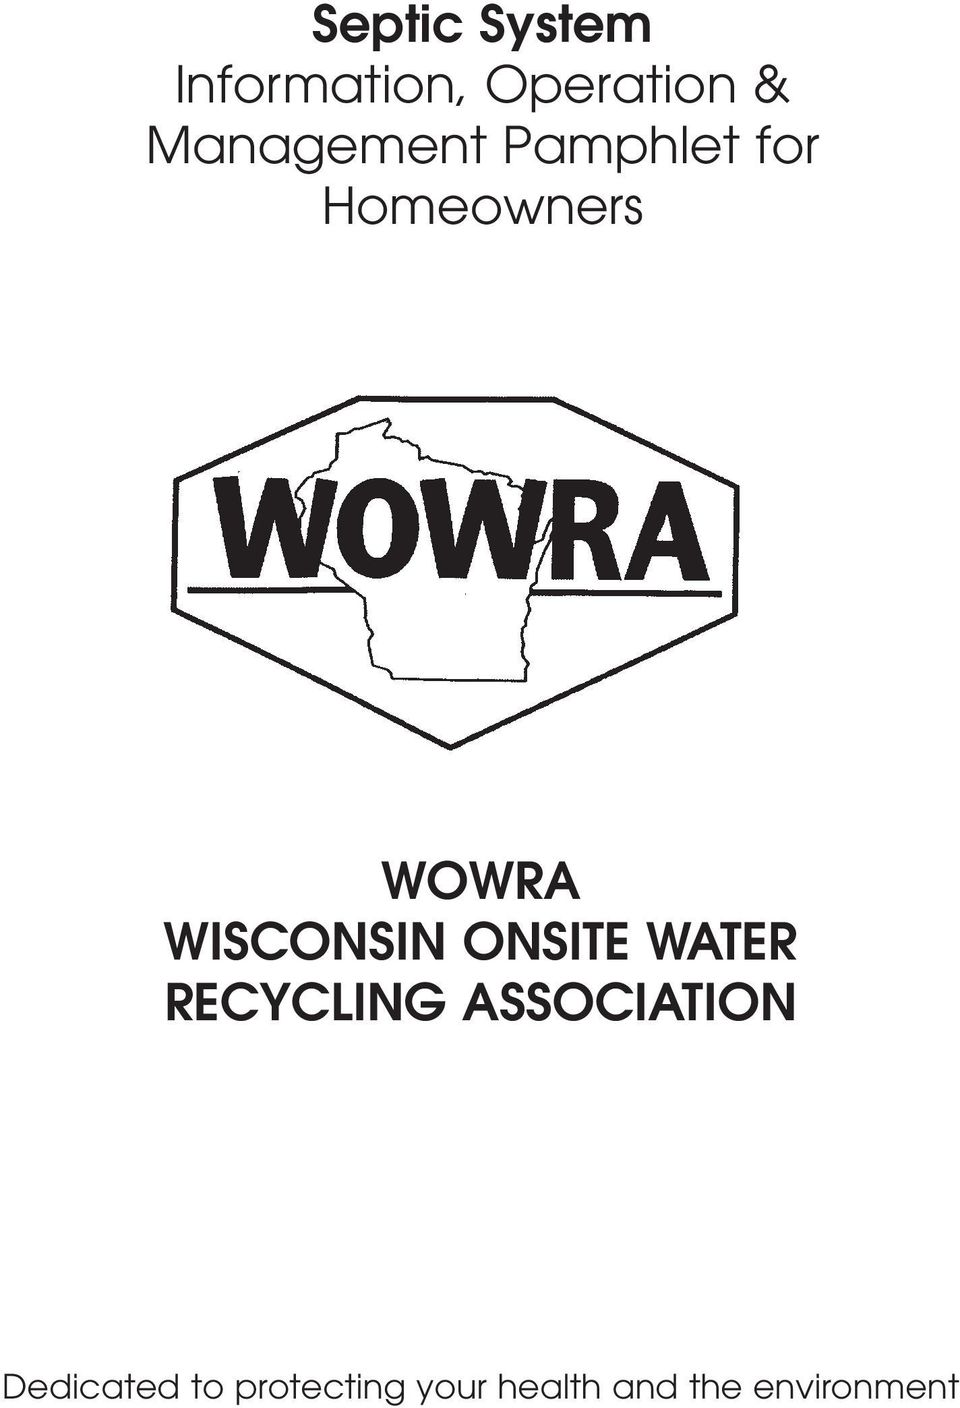 WISCONSIN ONSITE WATER RECYCLING ASSOCIATION